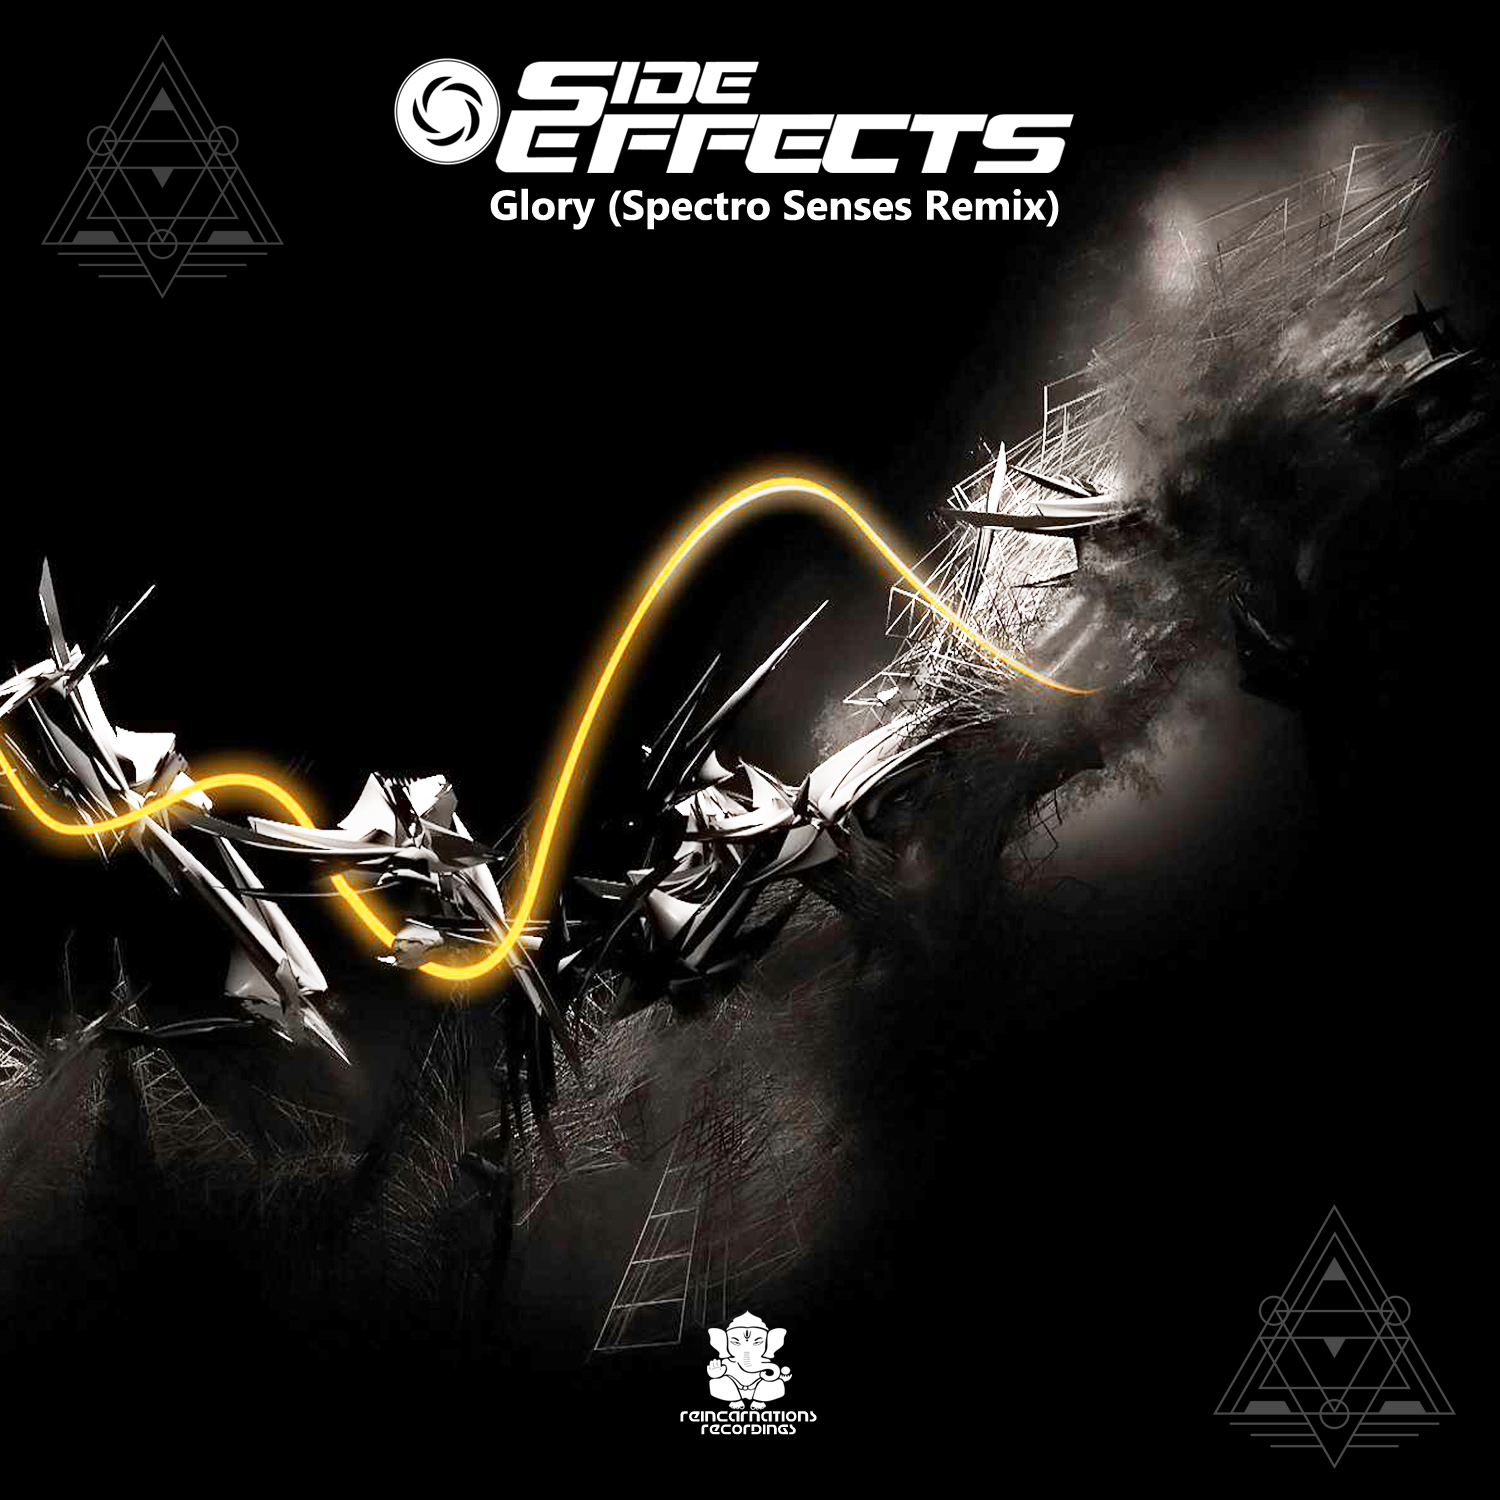 Side Effects – 'Glory' – Spectro Senses Remix out 12/03/18 on Reincarnations Recordings!